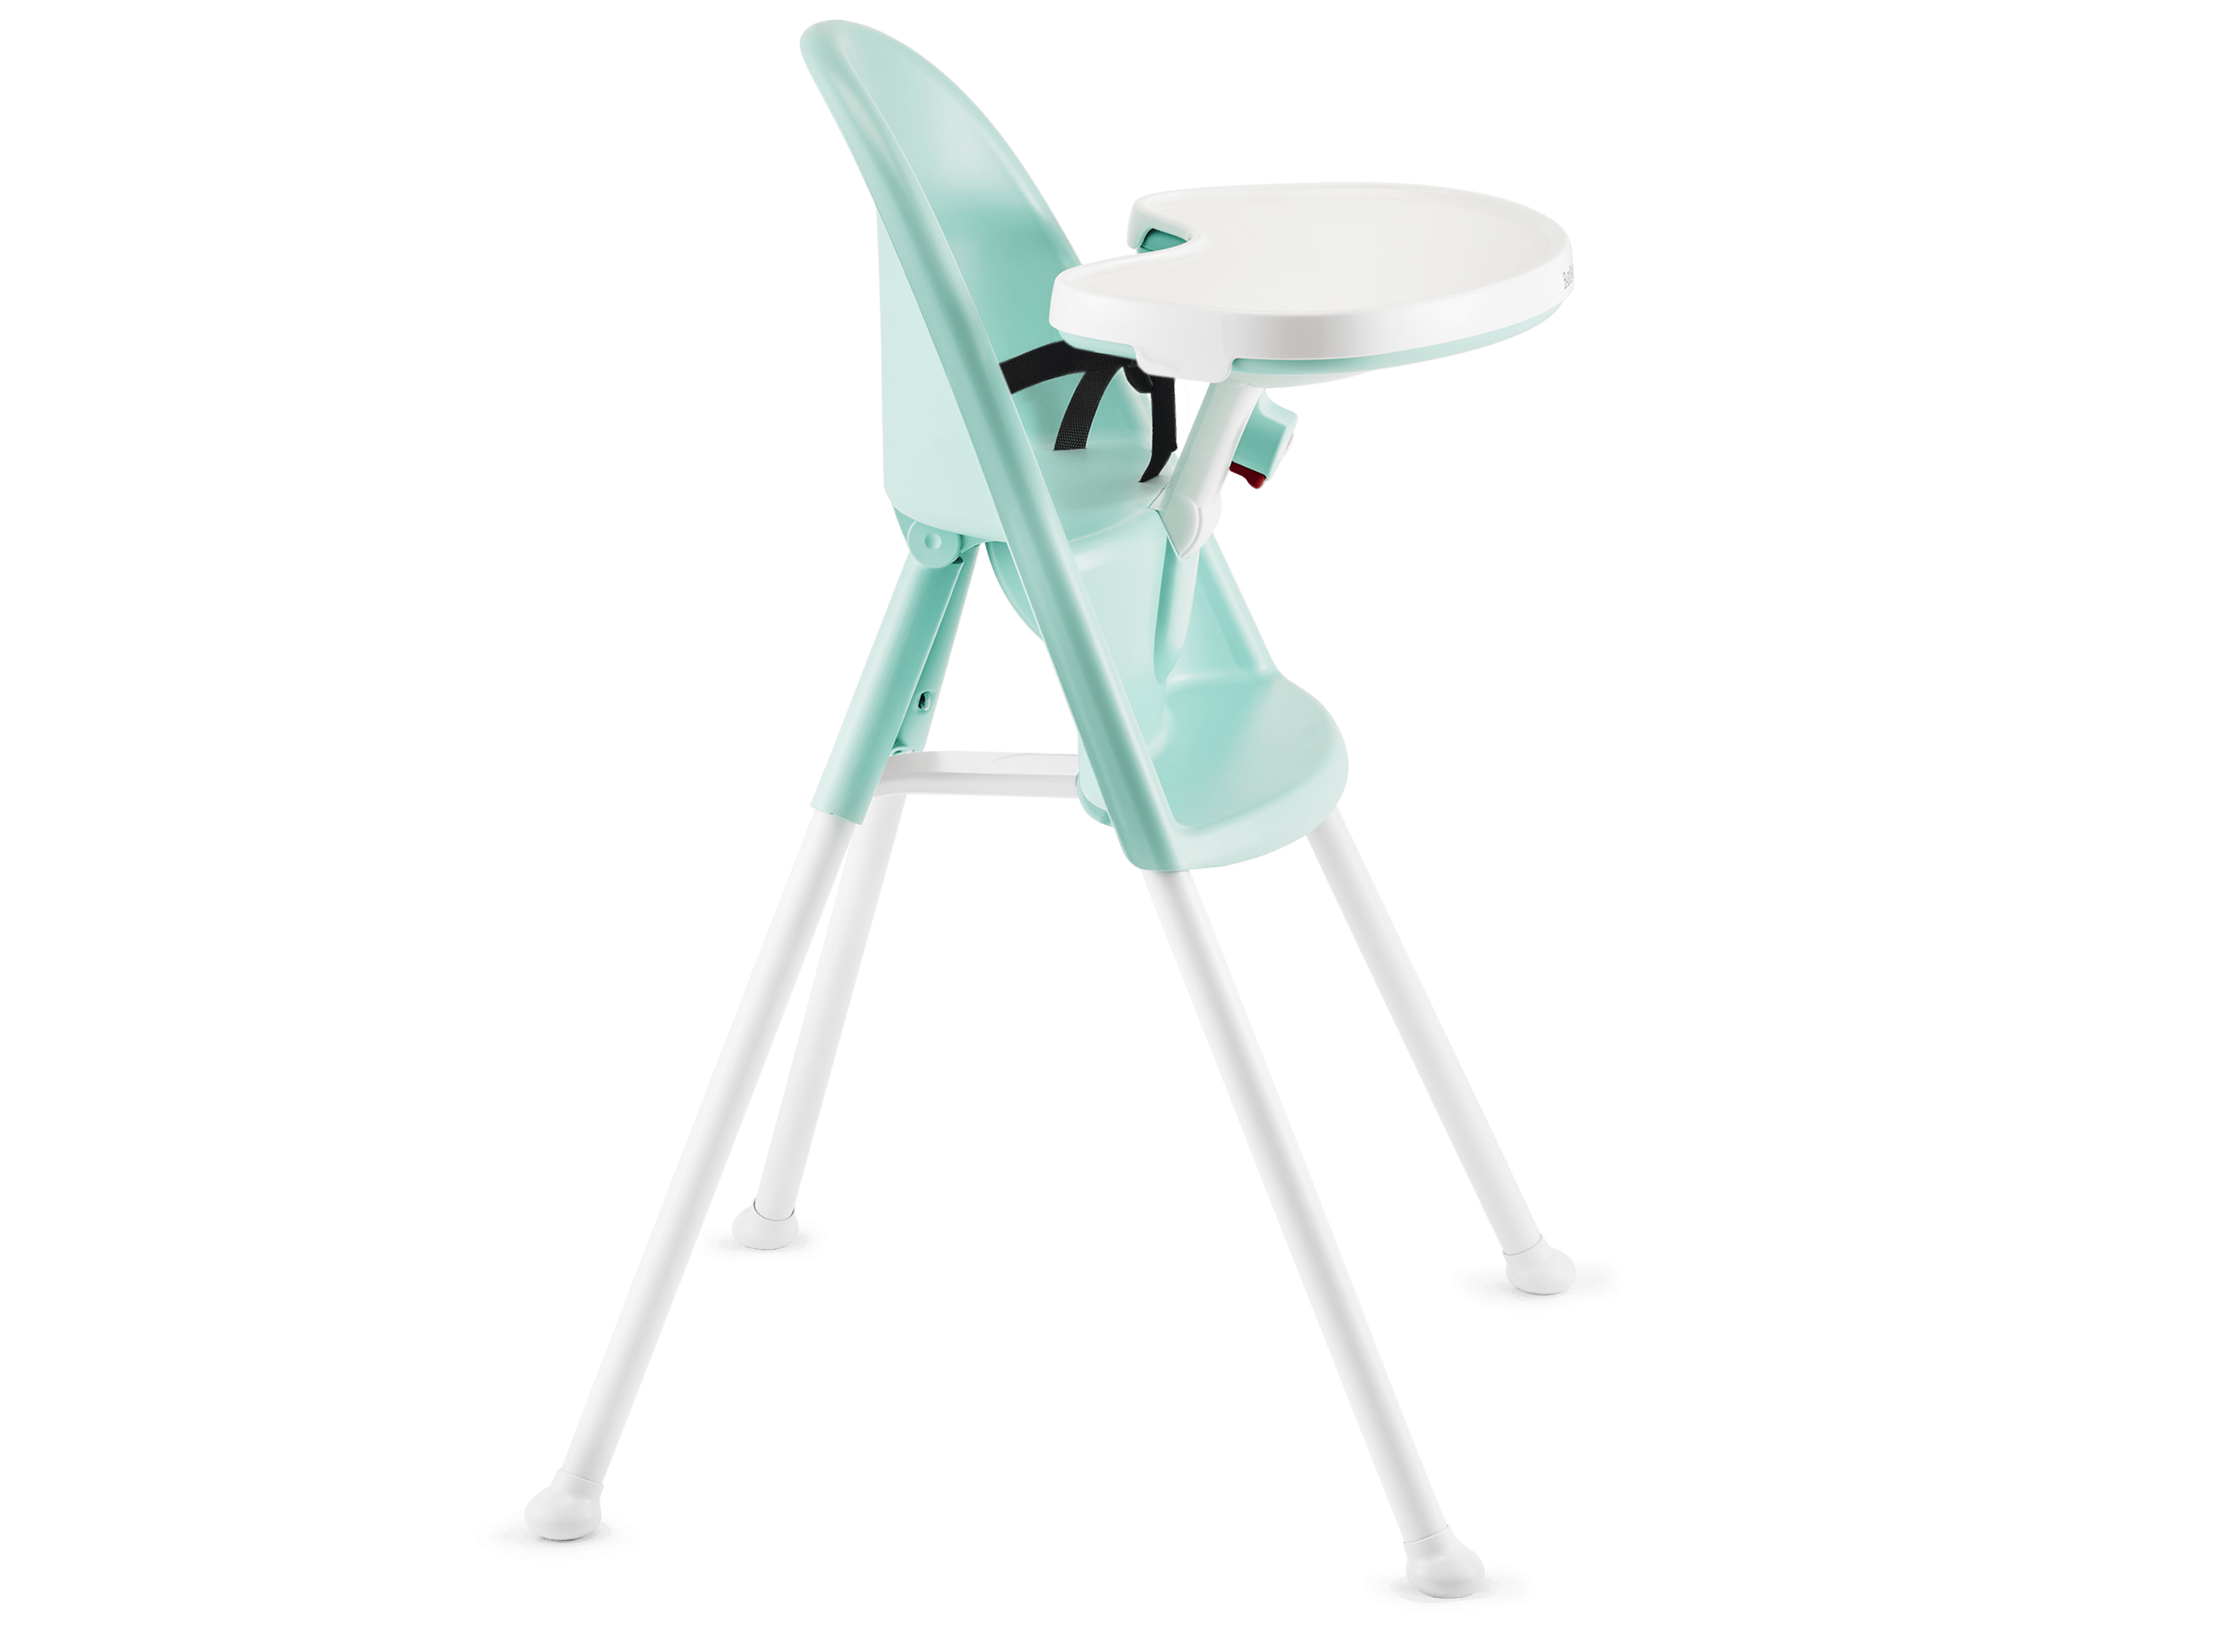 Kitchen High Chairs Infant High Chair Safe And Smart Design BabybjÖrn